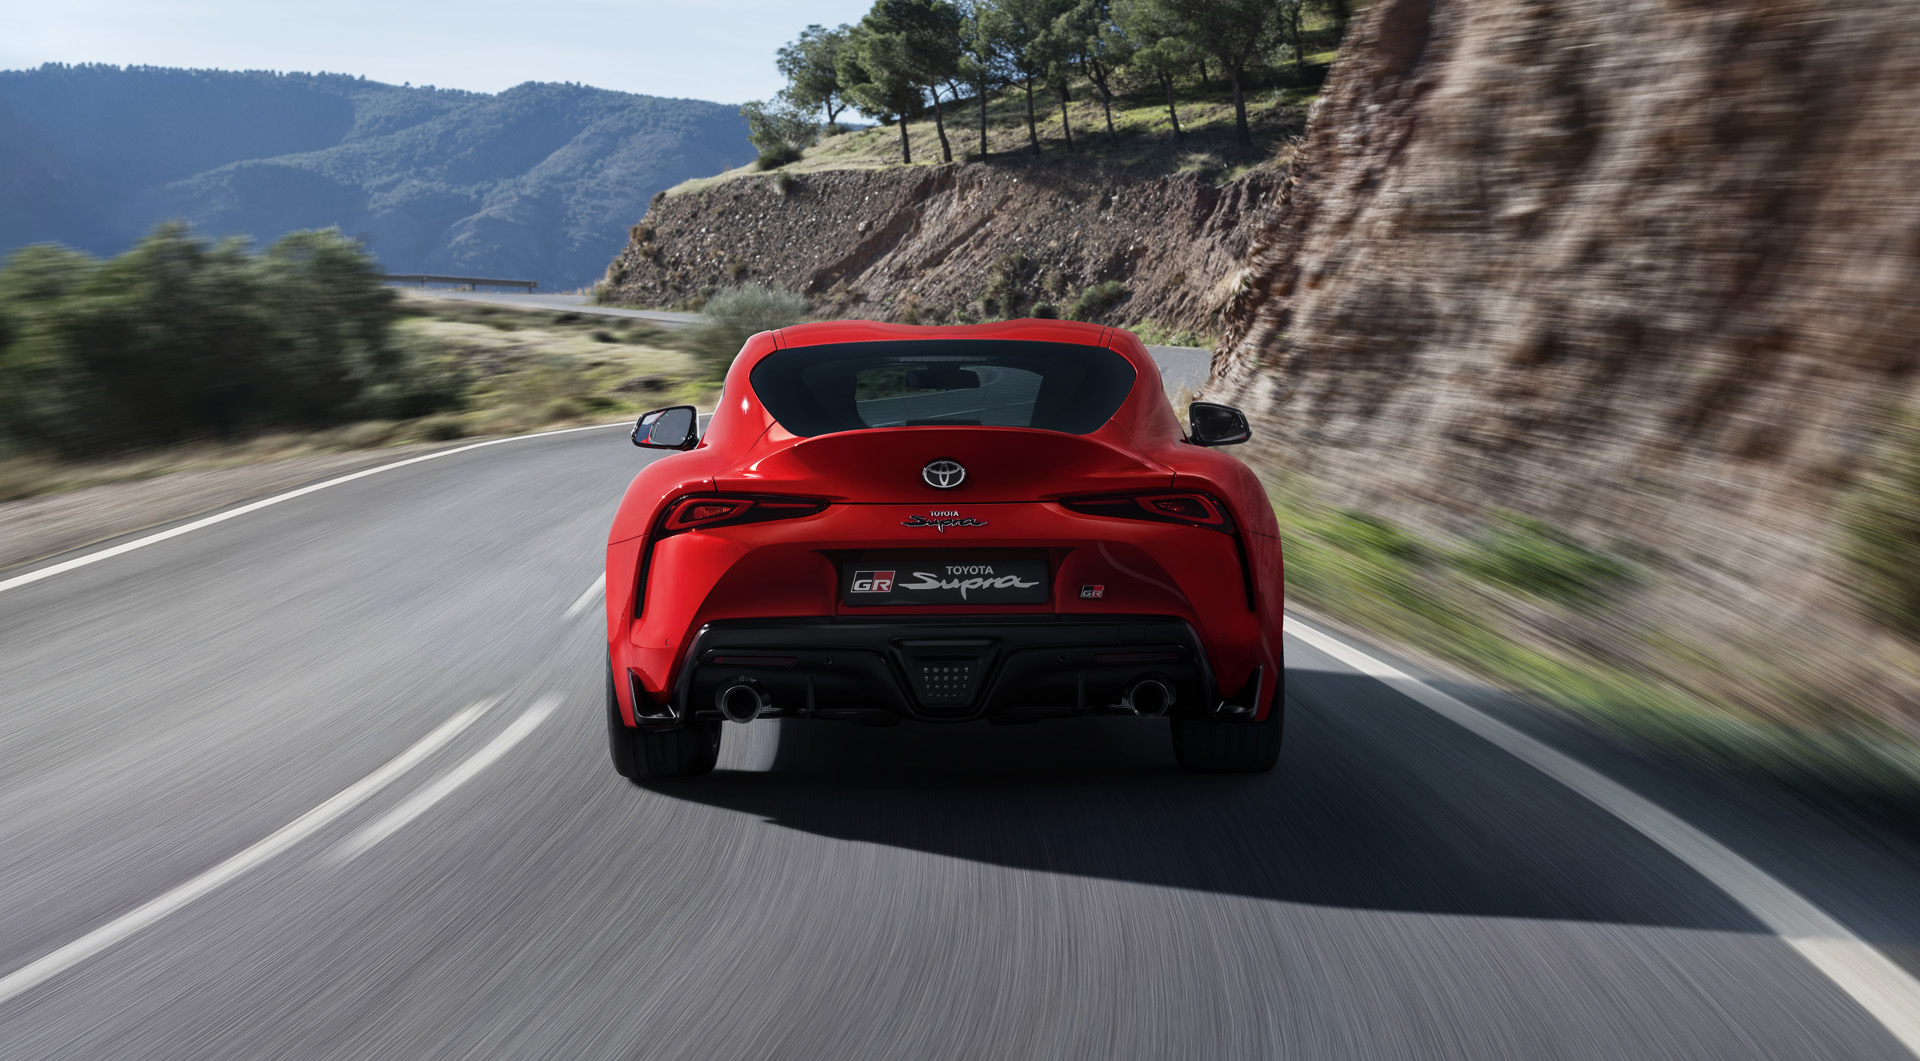 New Toyota GR Supra: design, technology and performance - Toyota